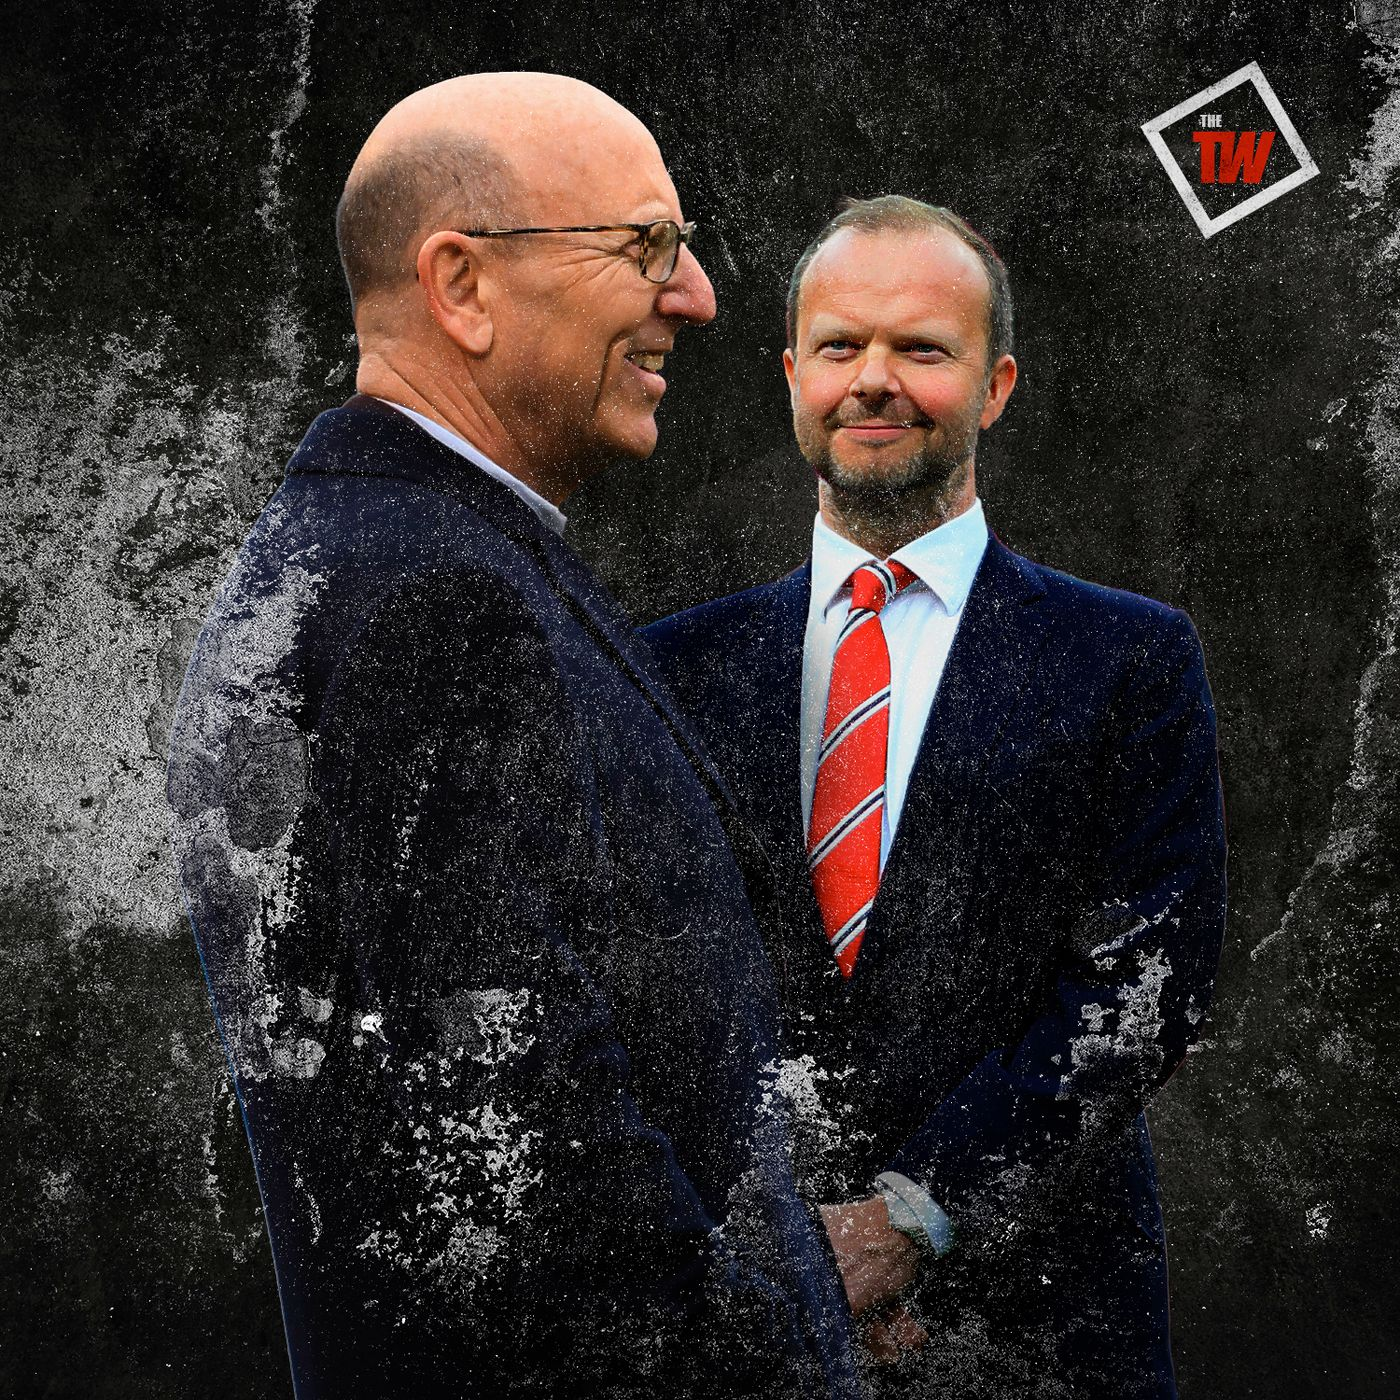 Man Utd's search for technical director 'advances' | Mourinho seeks defensive upgrade | Are Derby daft to gamble on Rooney?